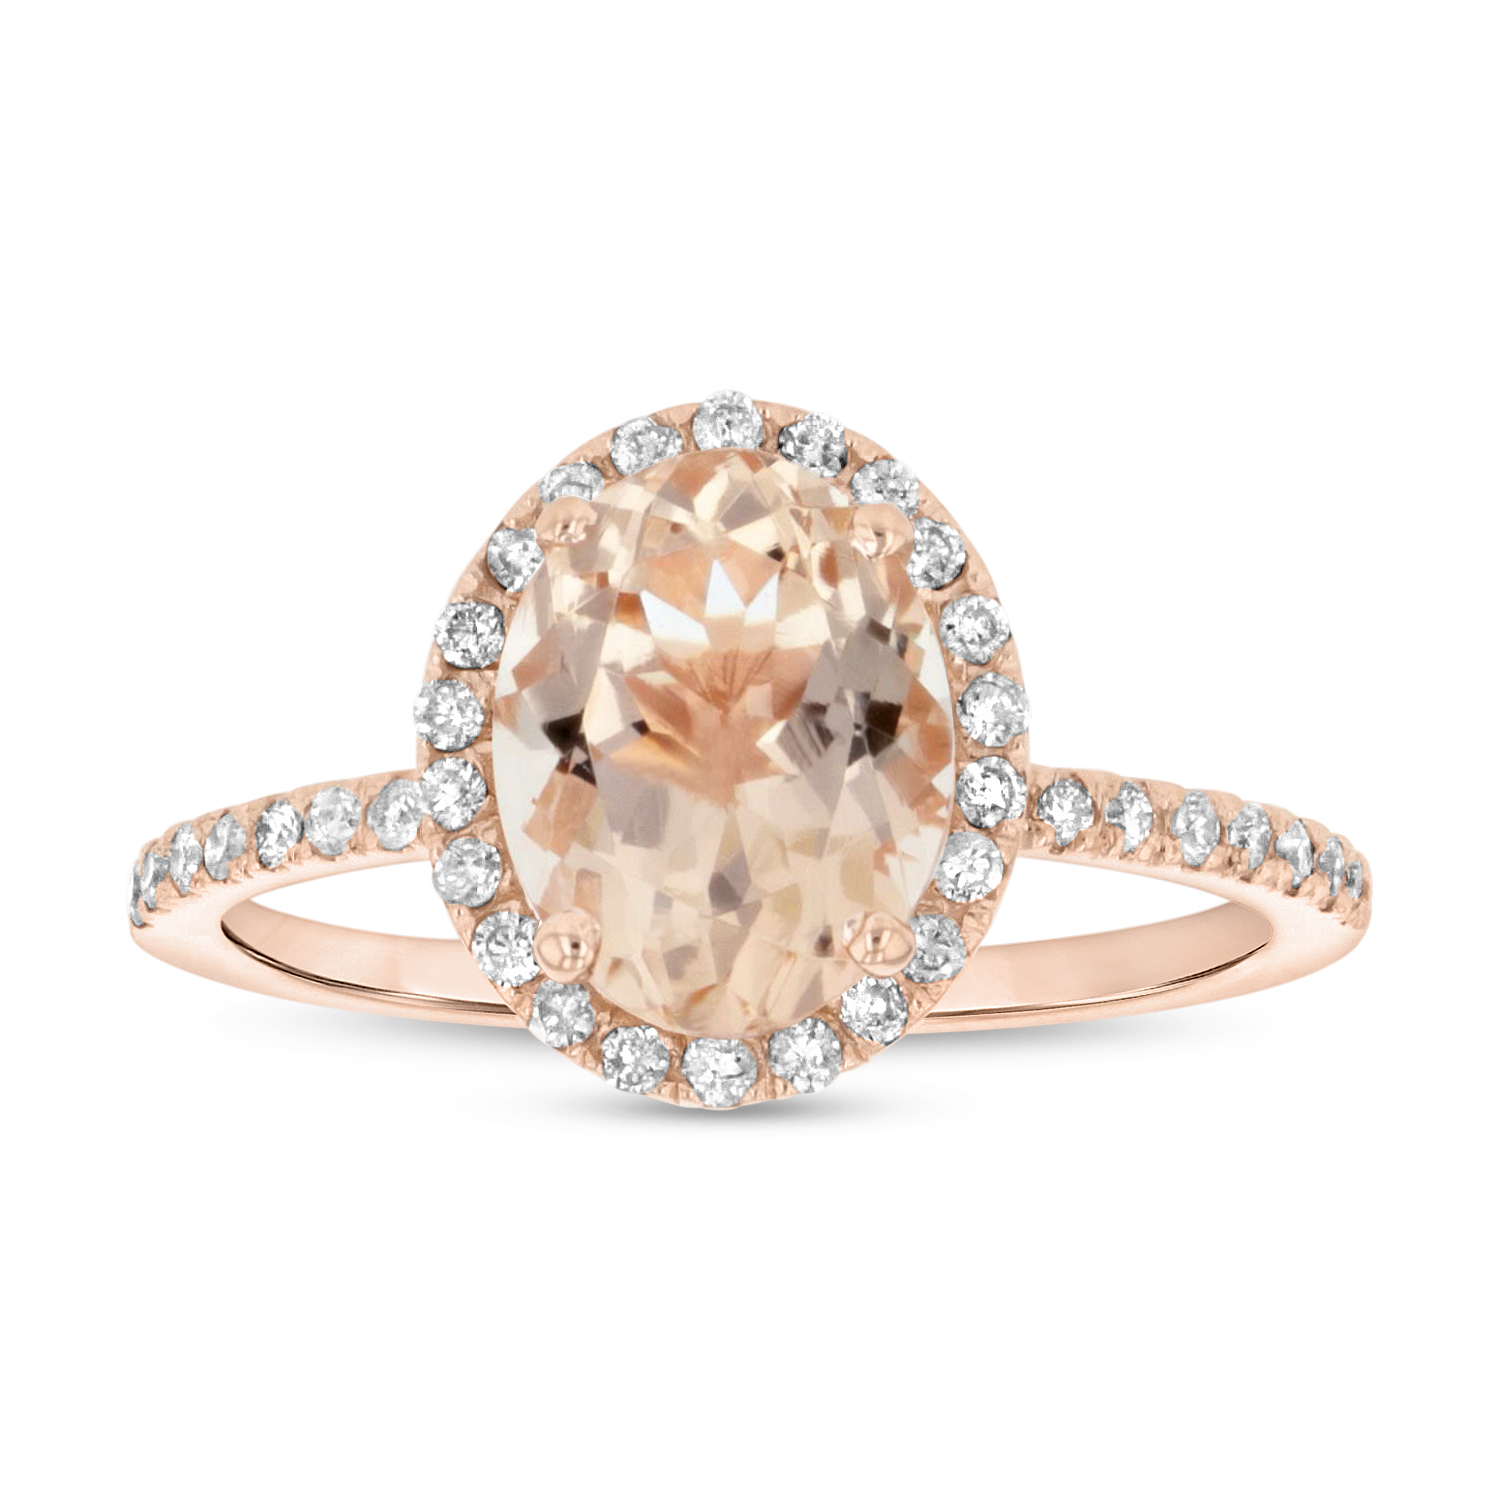 View 9X7 mm Oval Morganite and Diamond Ring in 14k Rose Gold